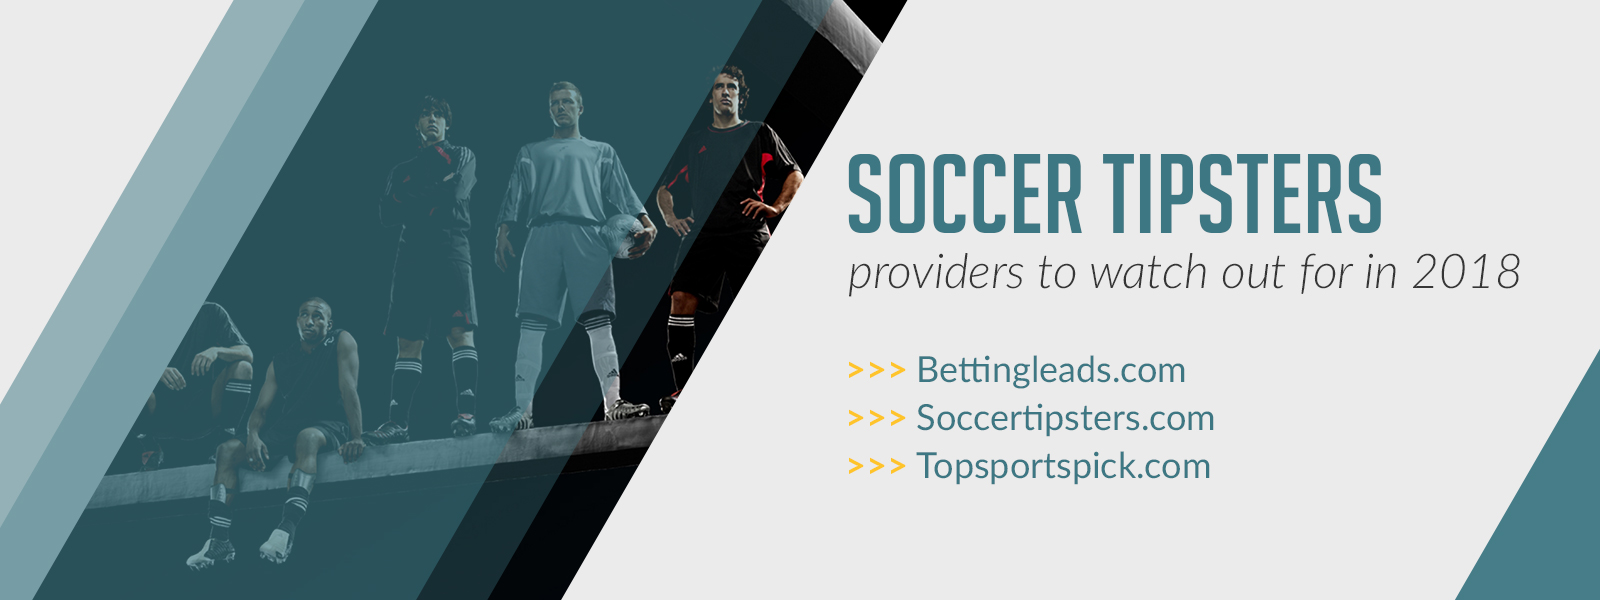 Best Soccer Tipsters Providers To Watch Out For In 2019